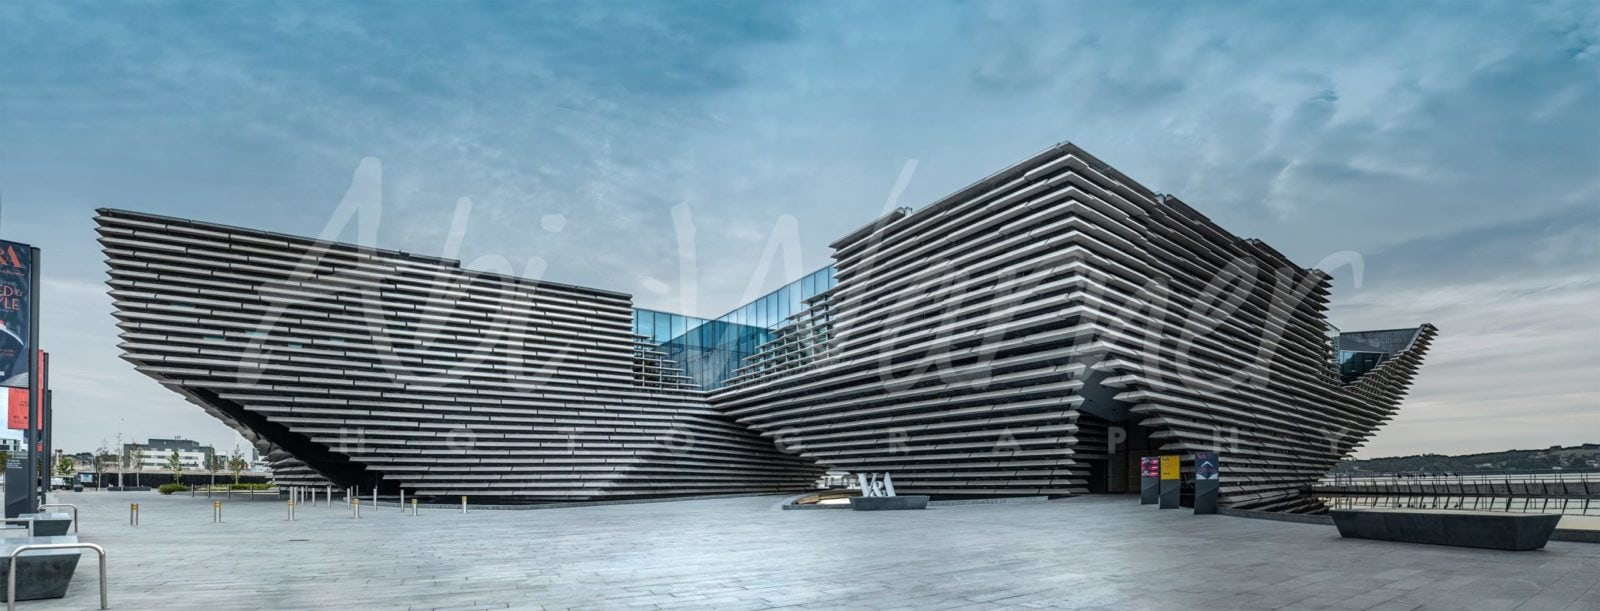 The V&A Dundee Panoramic Print